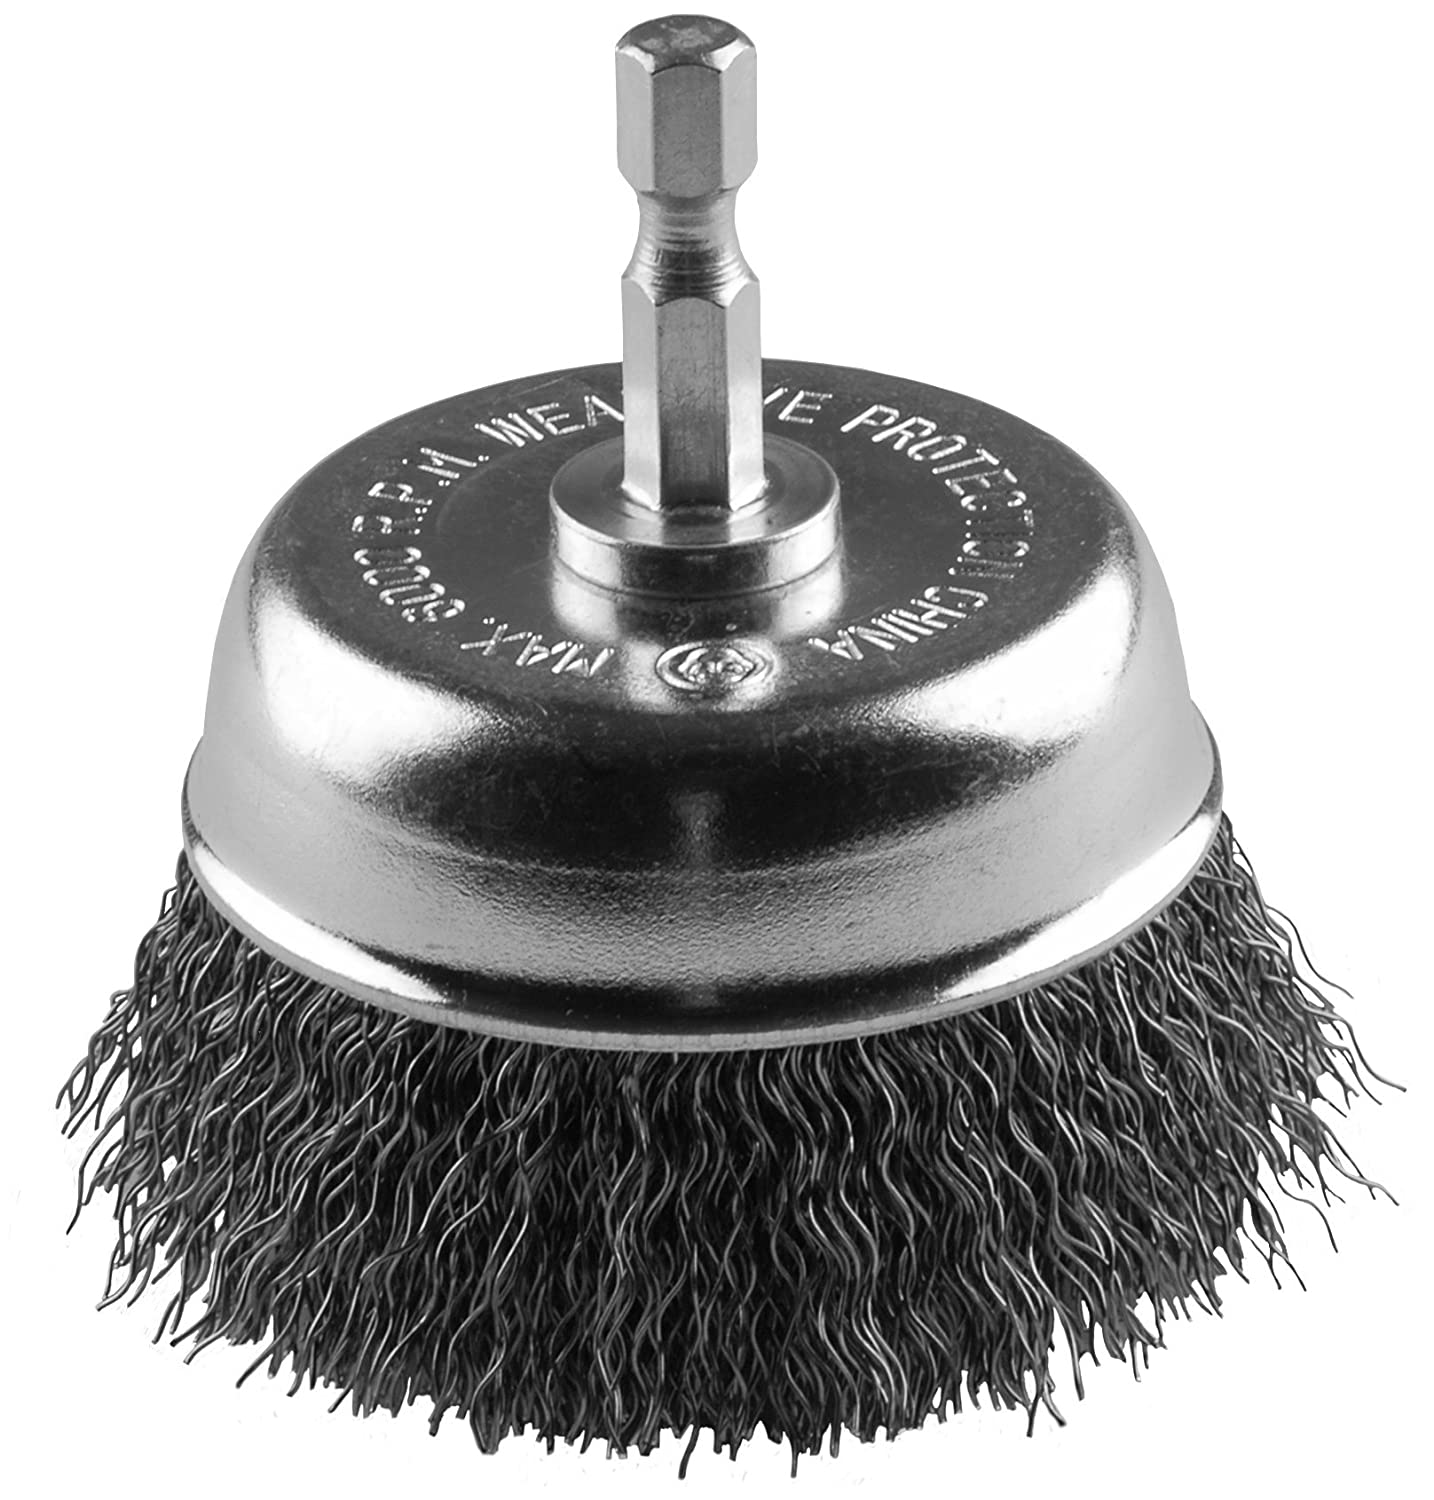 Hot Max 26218-5 3 Mounted Cup Brush with 1//4 Hex Shank and 0.12 Wire 5 Pack